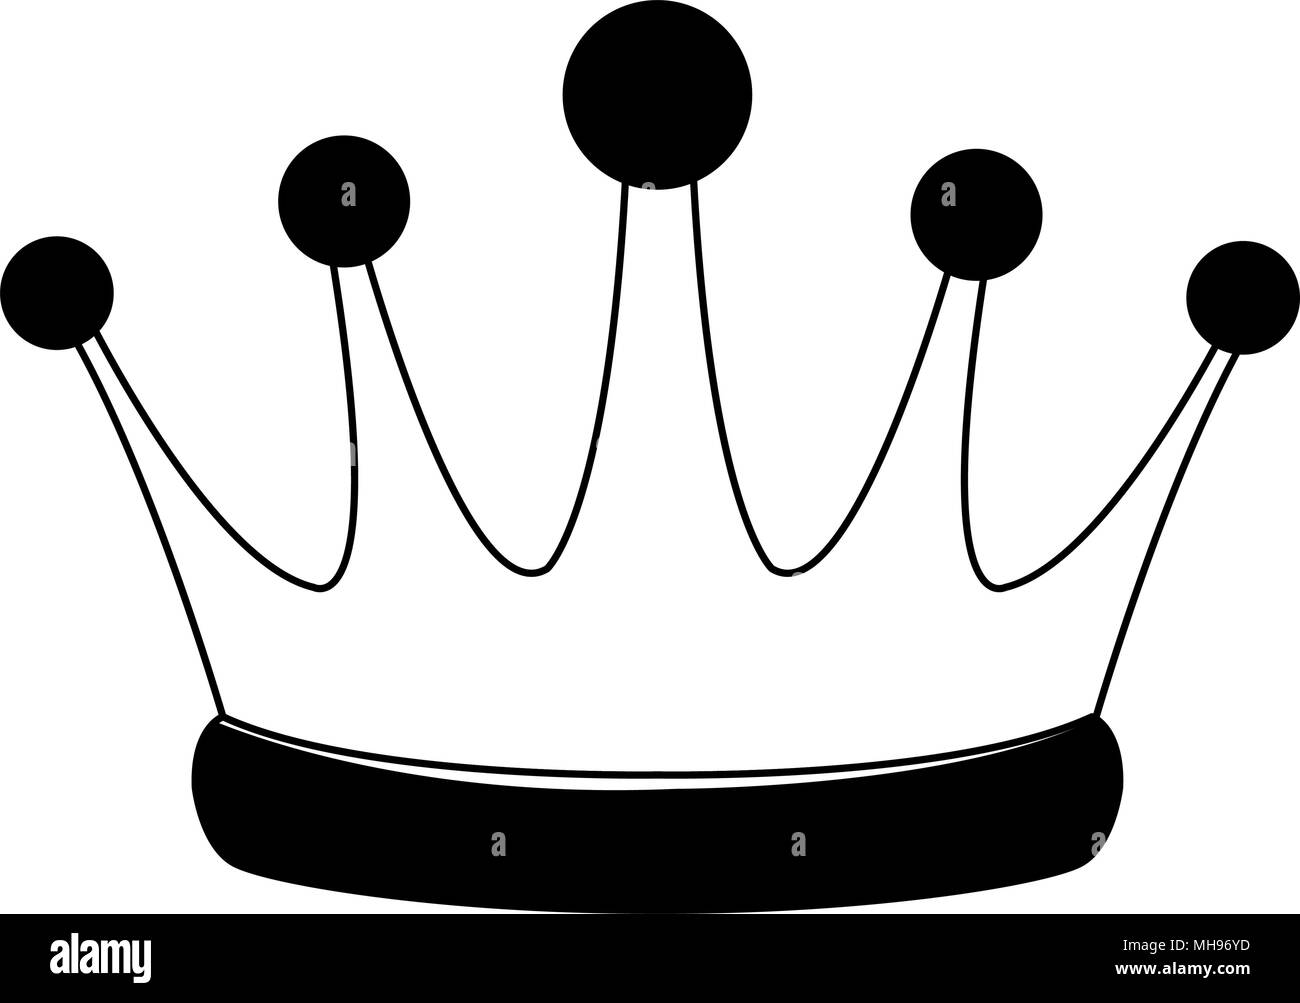 Black Crown Black And White Stock Photos Images Alamy